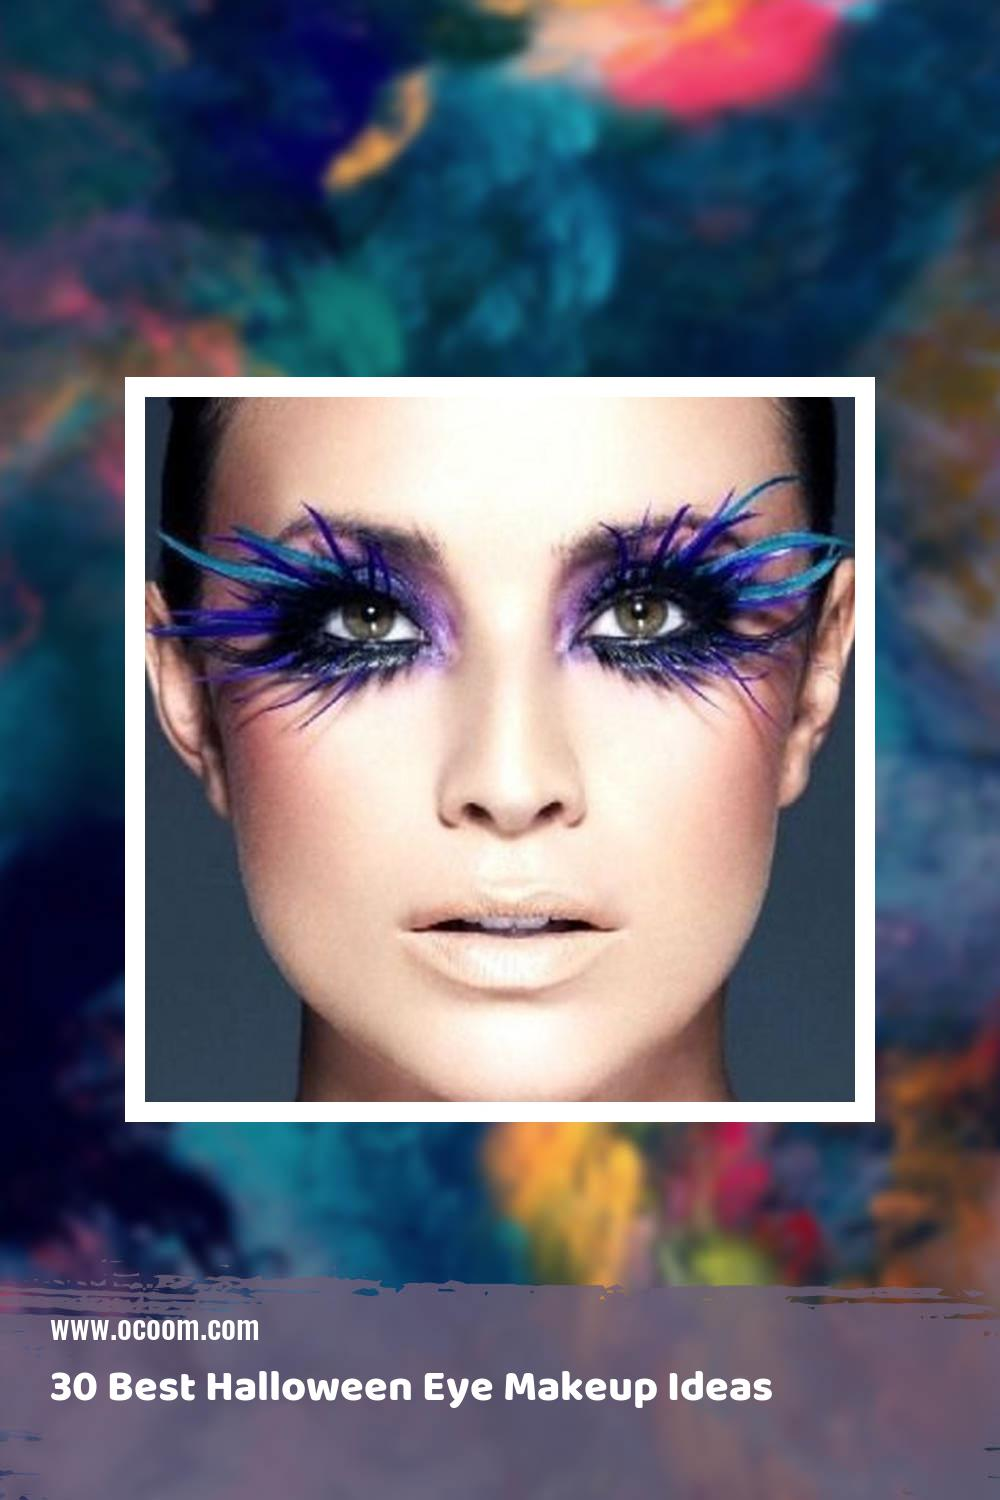 30 Best Halloween Eye Makeup Ideas 2